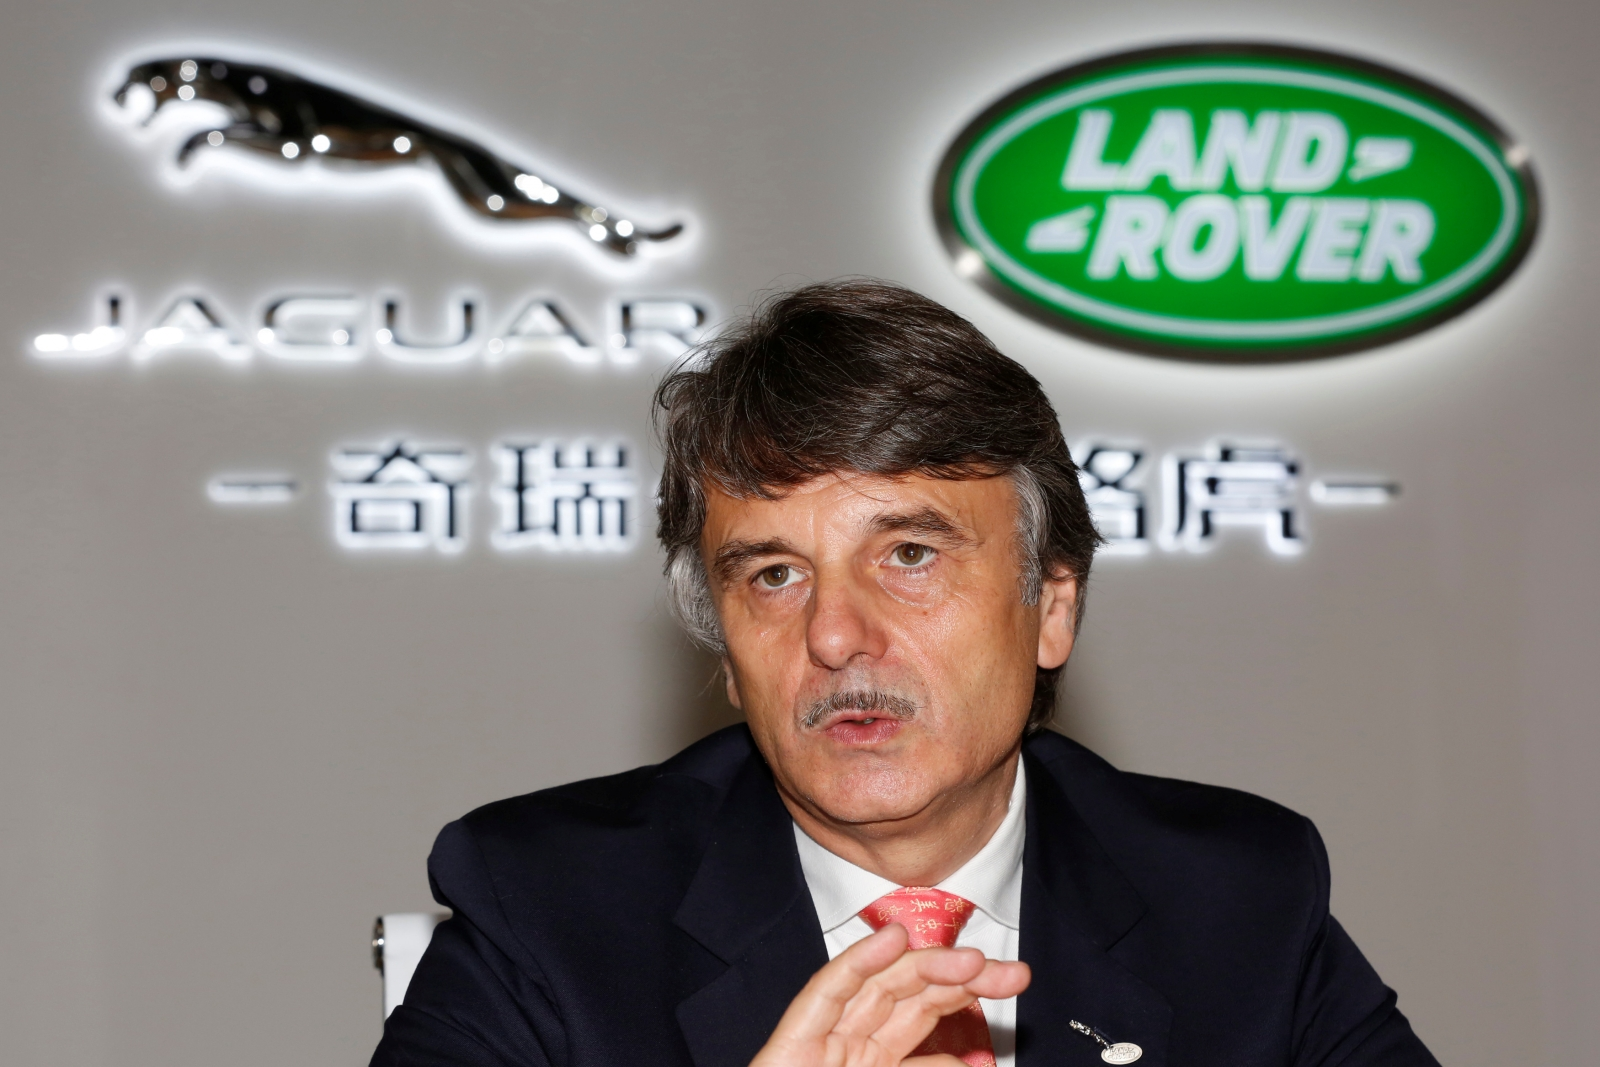 Jlr Ceo Ralf Speth Among Those Being Considered For Role